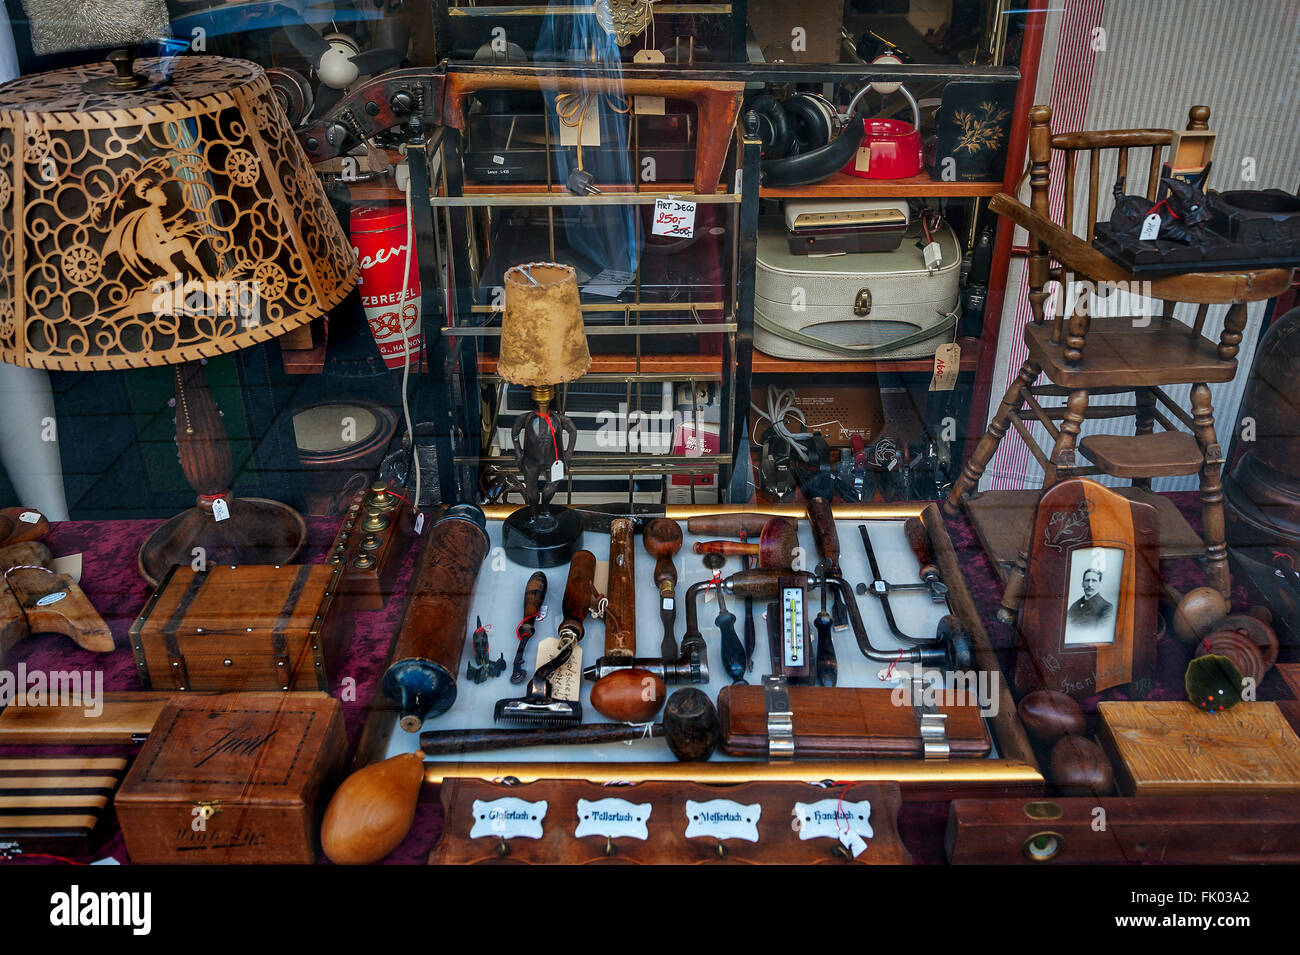 junk shop stock photos junk shop stock images alamy. Black Bedroom Furniture Sets. Home Design Ideas